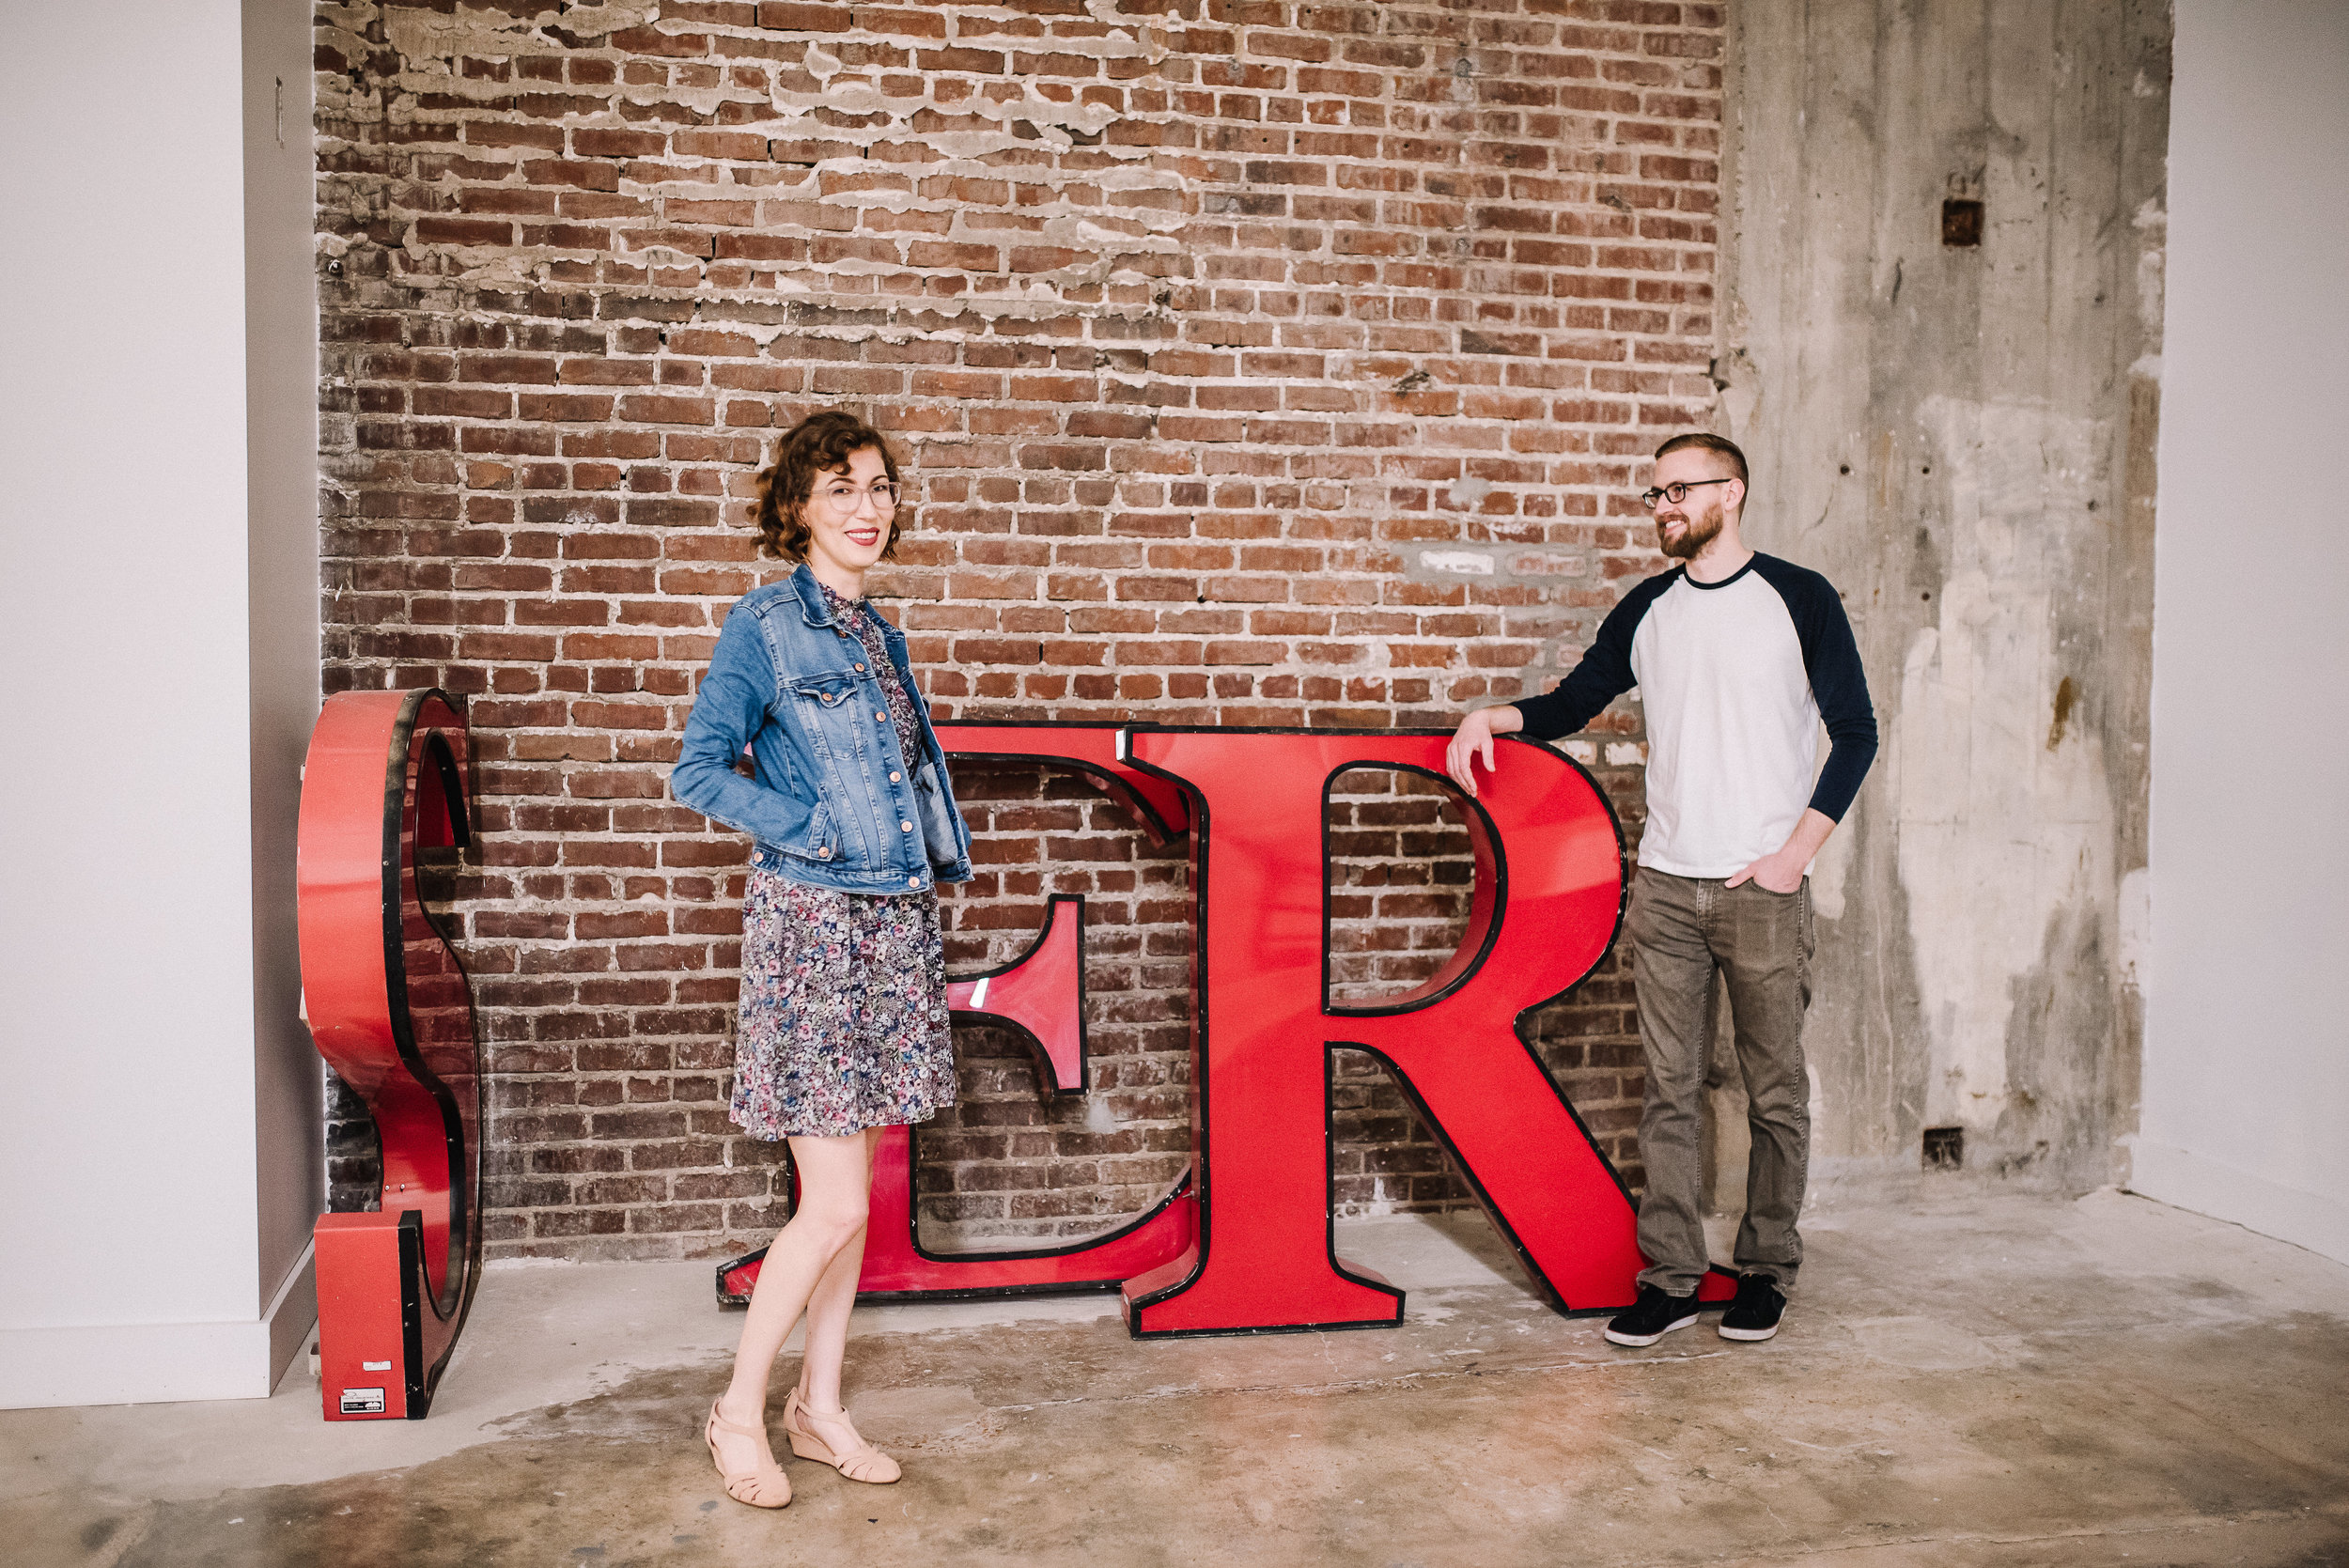 Crosstown-Concourse-Engagement-Session_Angela&Eric-22.jpg